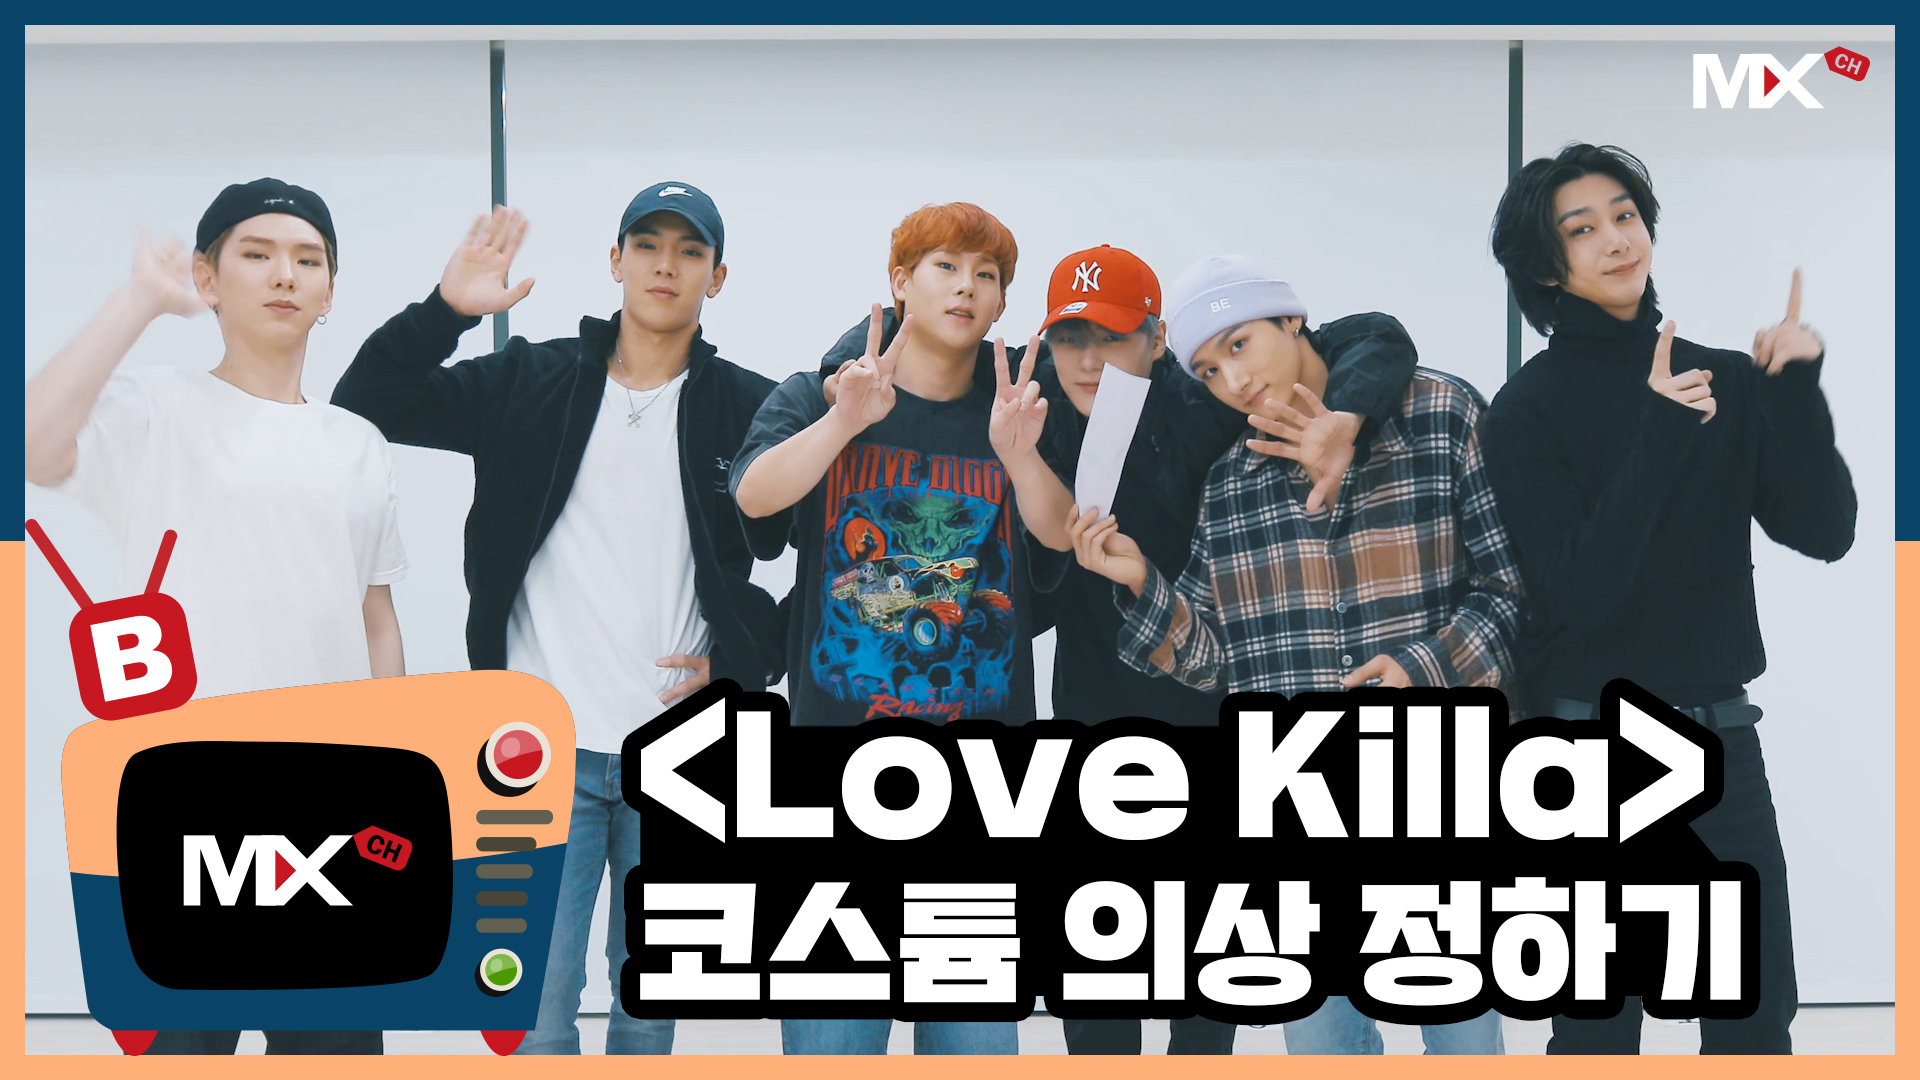 [몬채널][B] EP.205 'Love Killa' Picking costumes randomly